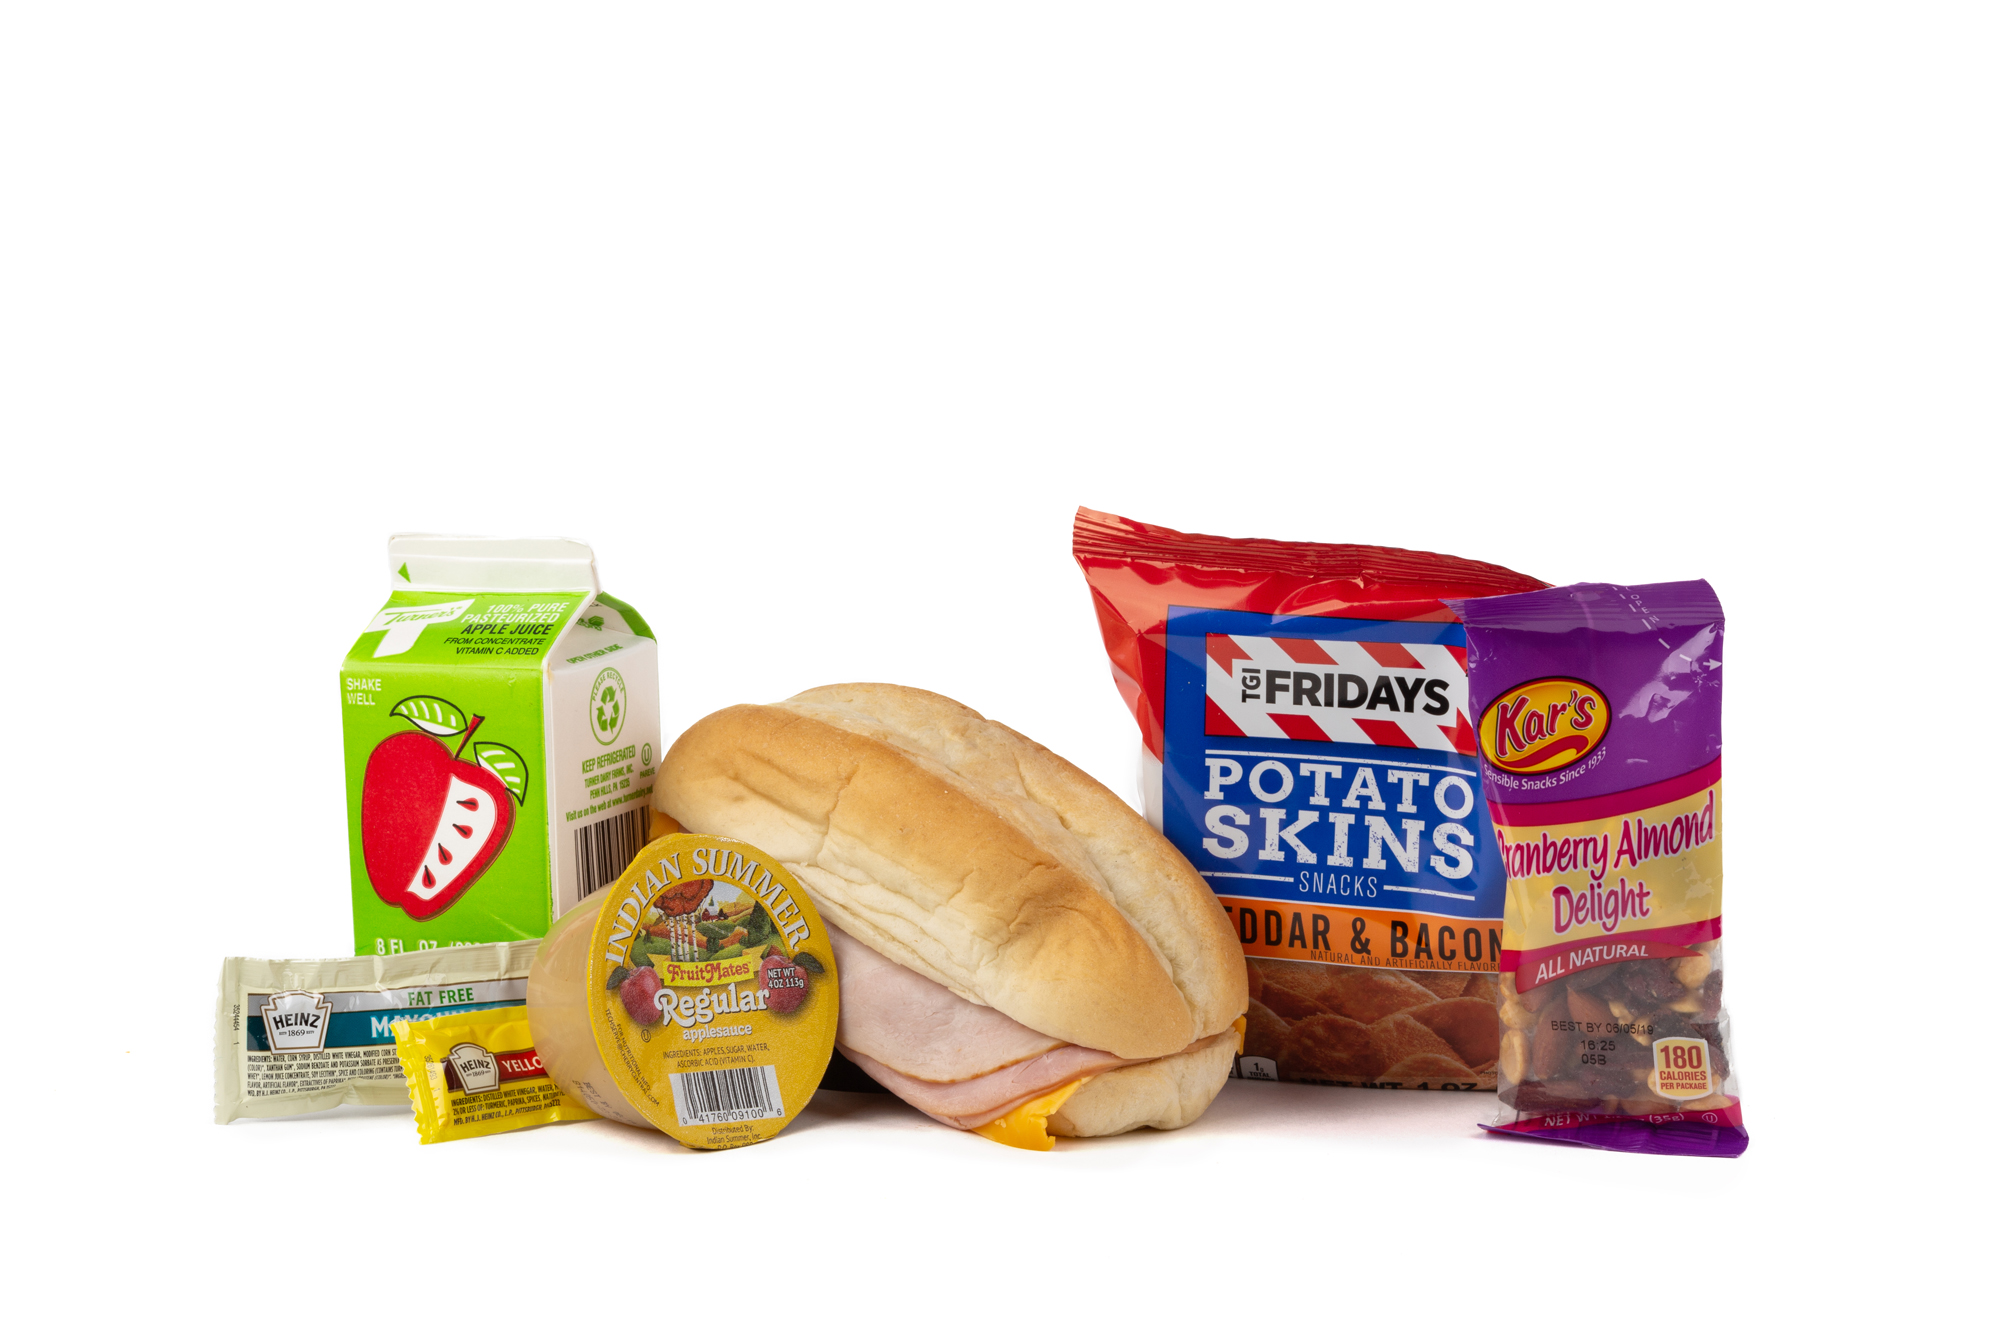 MK04 - Fresh Turk Ham Cheese  Smoked Ham/ Turkey Breast/ Cheese on Hoagie Roll TGIF Potato Chips Applesauce Cup Trail Mix Cranberry Almond Delight Mustard Packet Mayonnaise Packet Fat Free Apple Juice